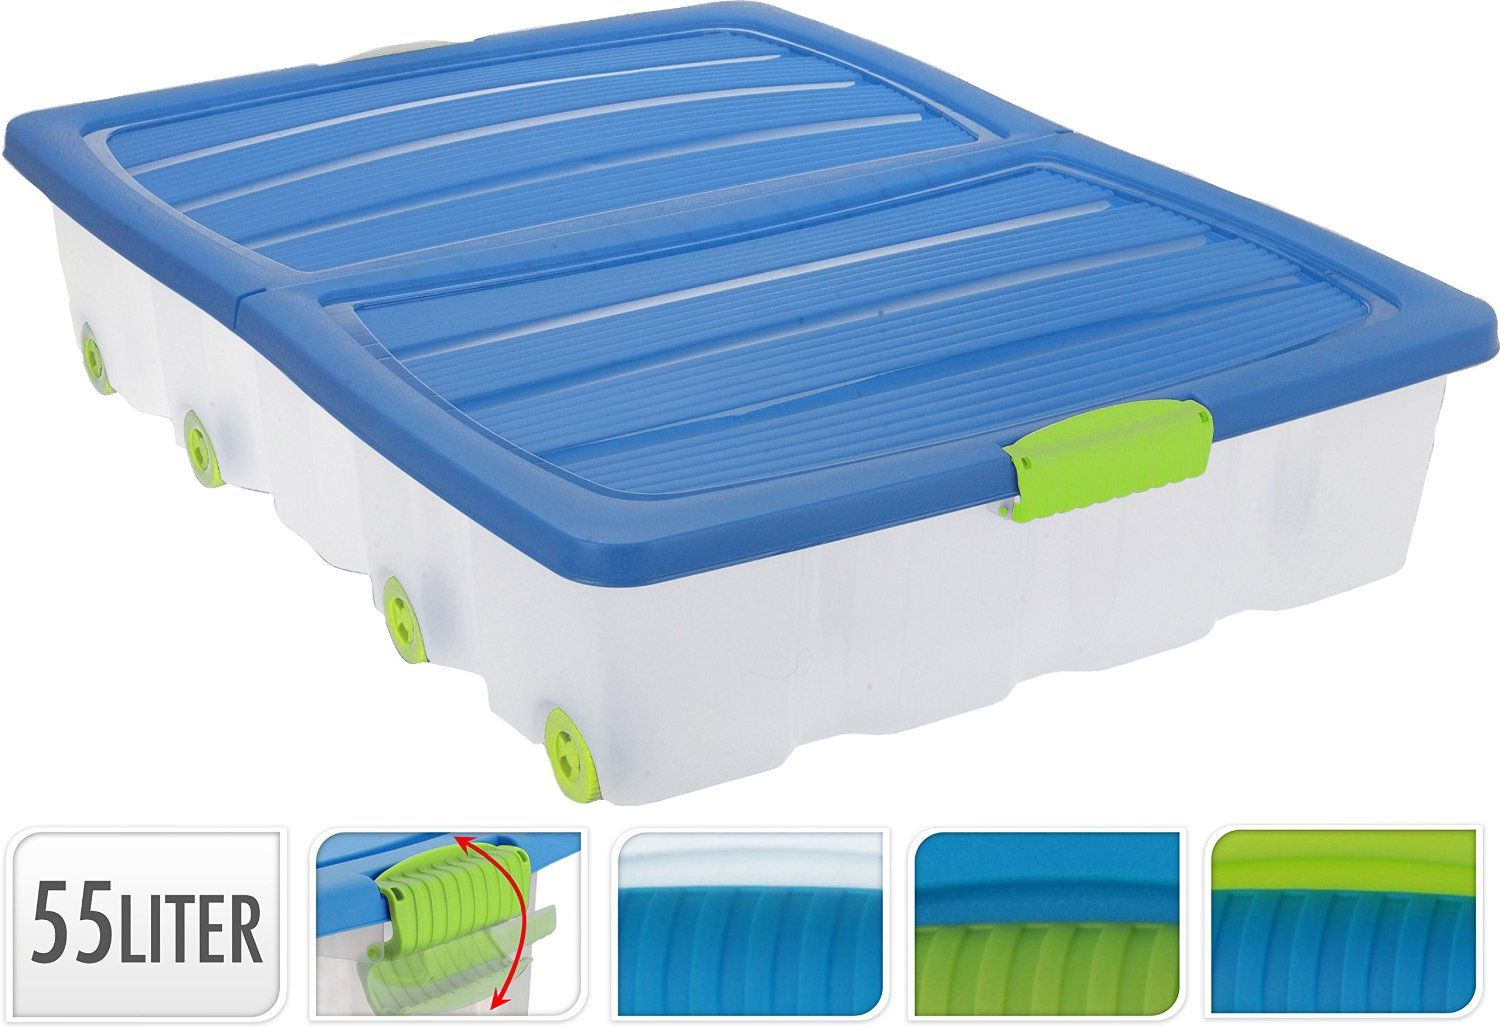 PACK OF 2   55L LARGE UNDERBED PLASTIC WHEELED STORAGE BOX CONTAINER WITH  FOLDING LID: